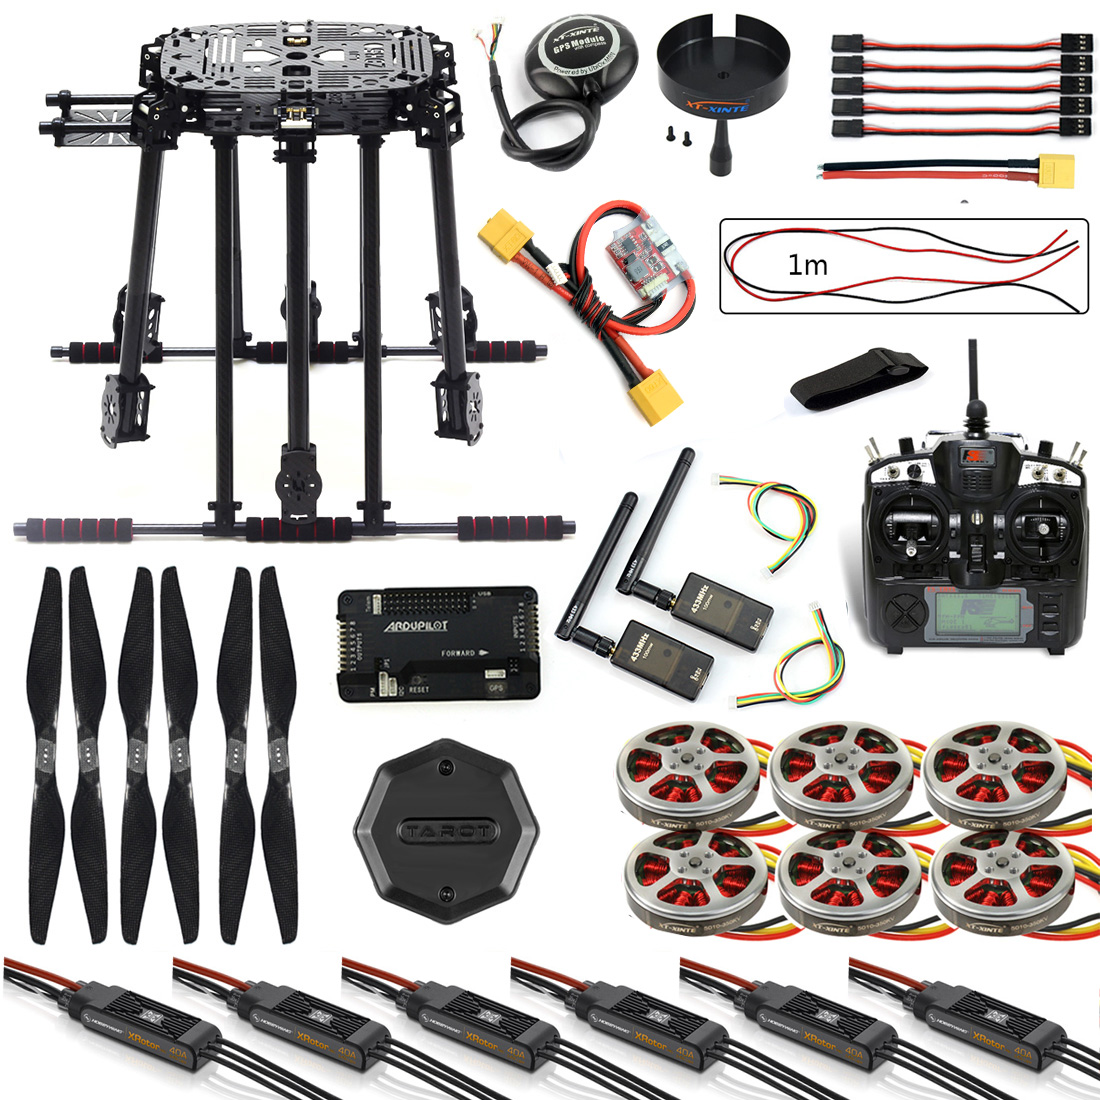 все цены на DIY ZD850 Frame Kit APM2.8 Flight Control M8N GPS Flysky TH9X Remote Control 3DR Telemetry Motor ESC for RC Hexacopter F19833-G онлайн